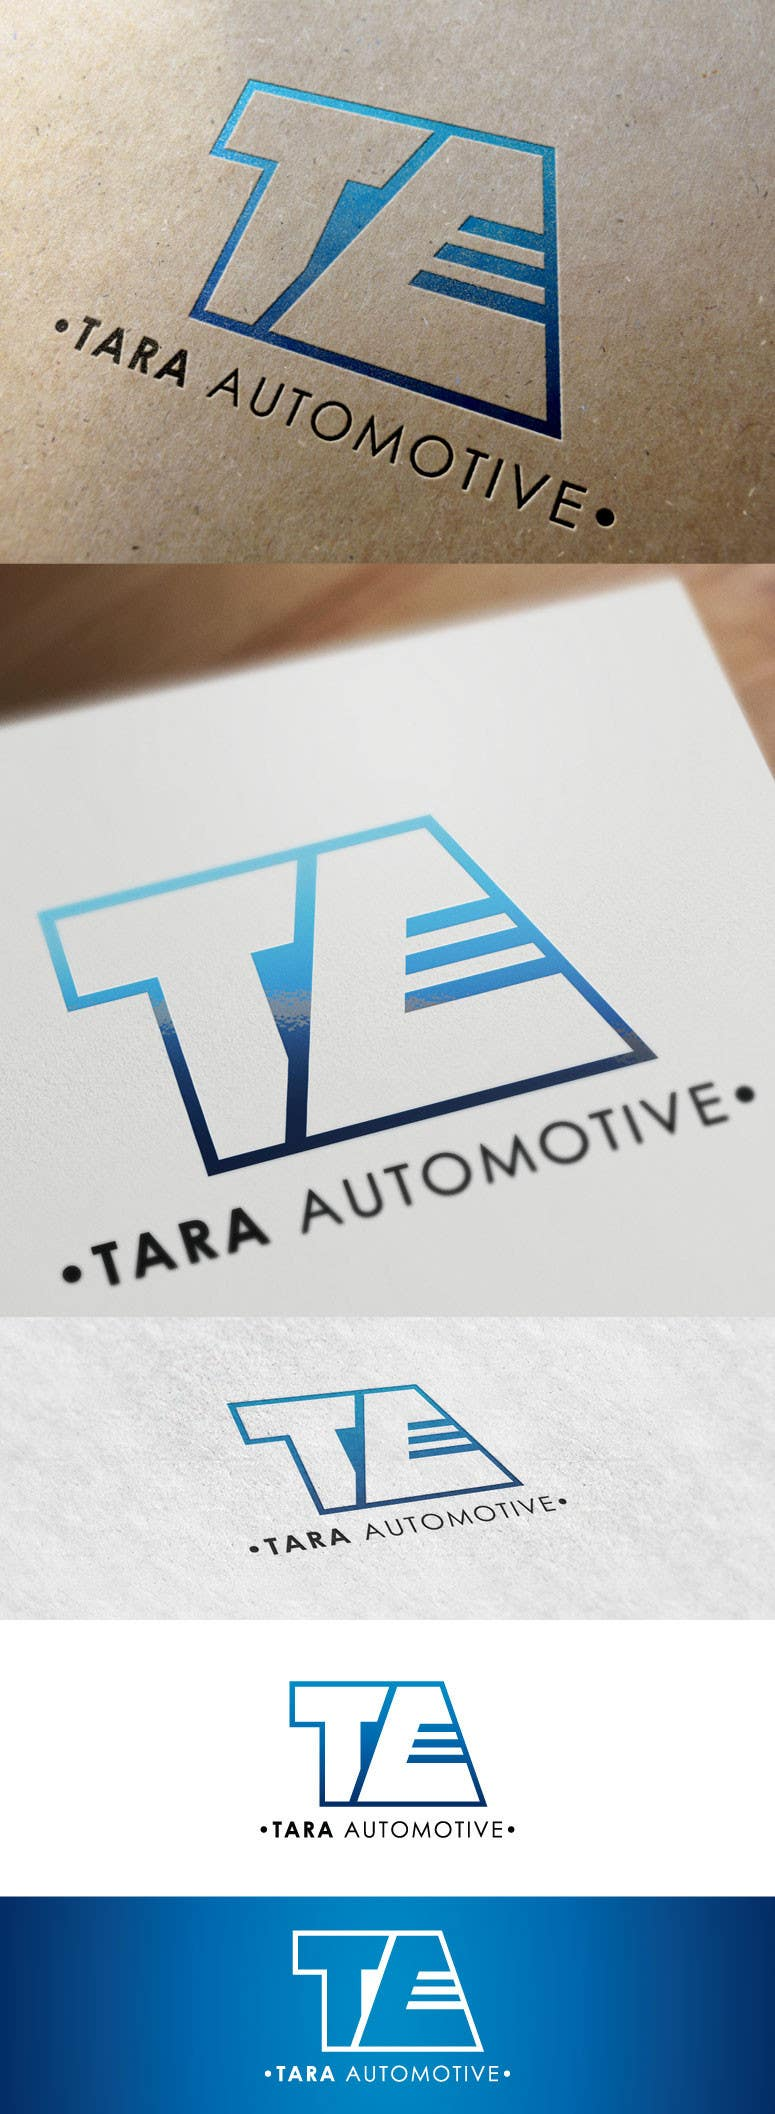 #109 for Design a Logo for Tara Automotive by jass191